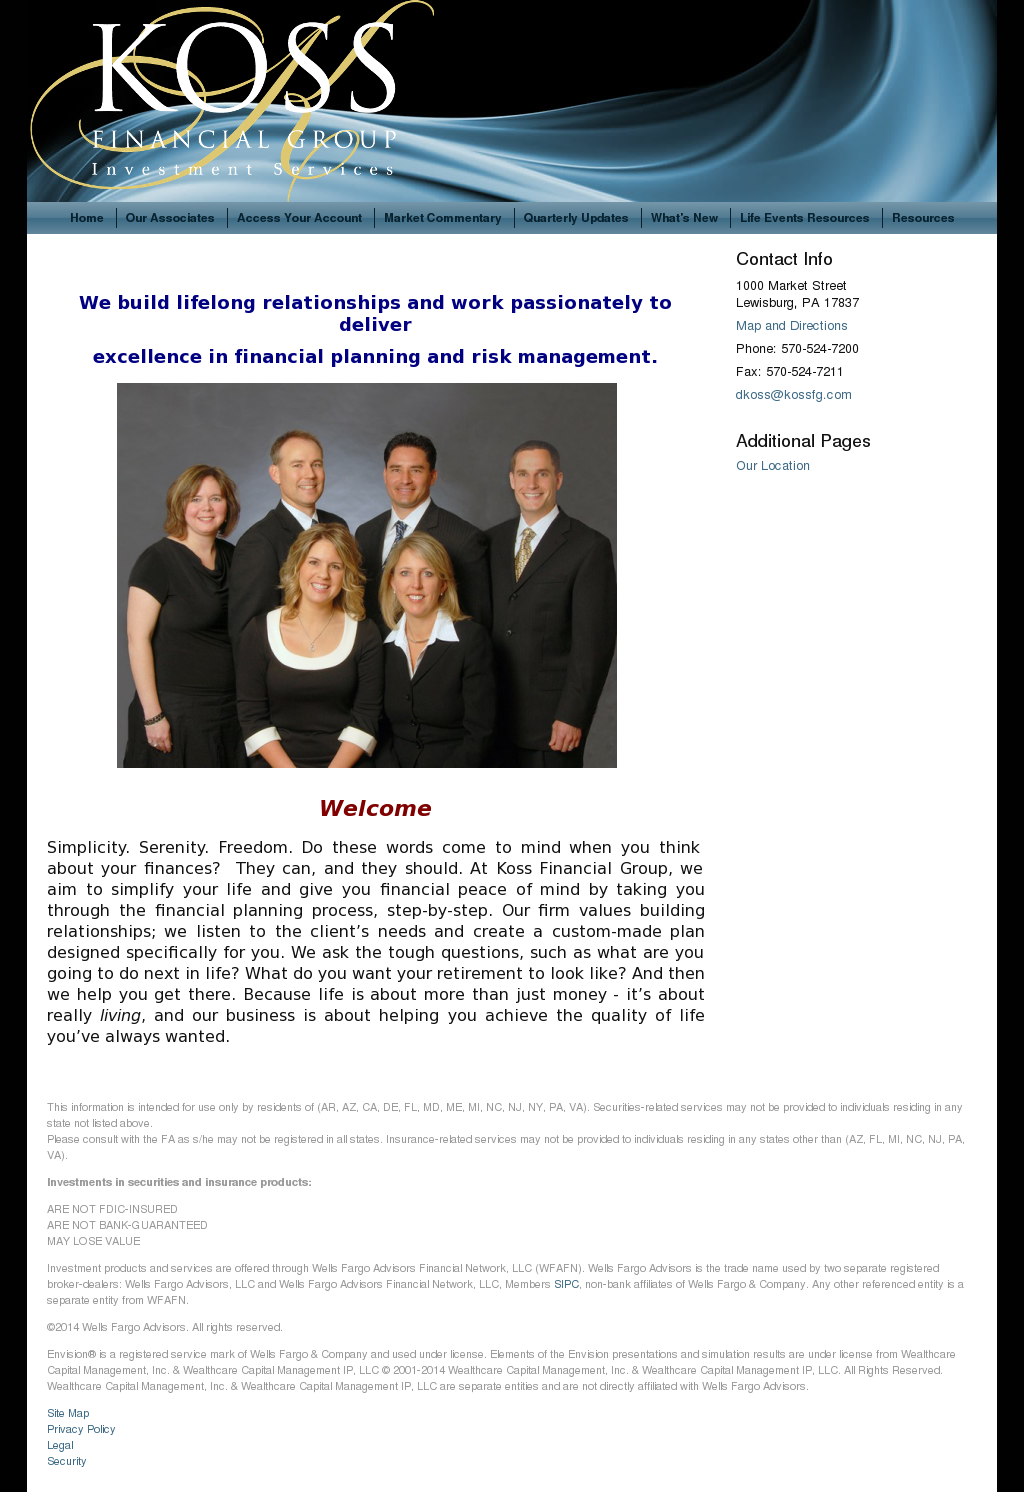 Koss Financial Group Competitors, Revenue and Employees - Owler